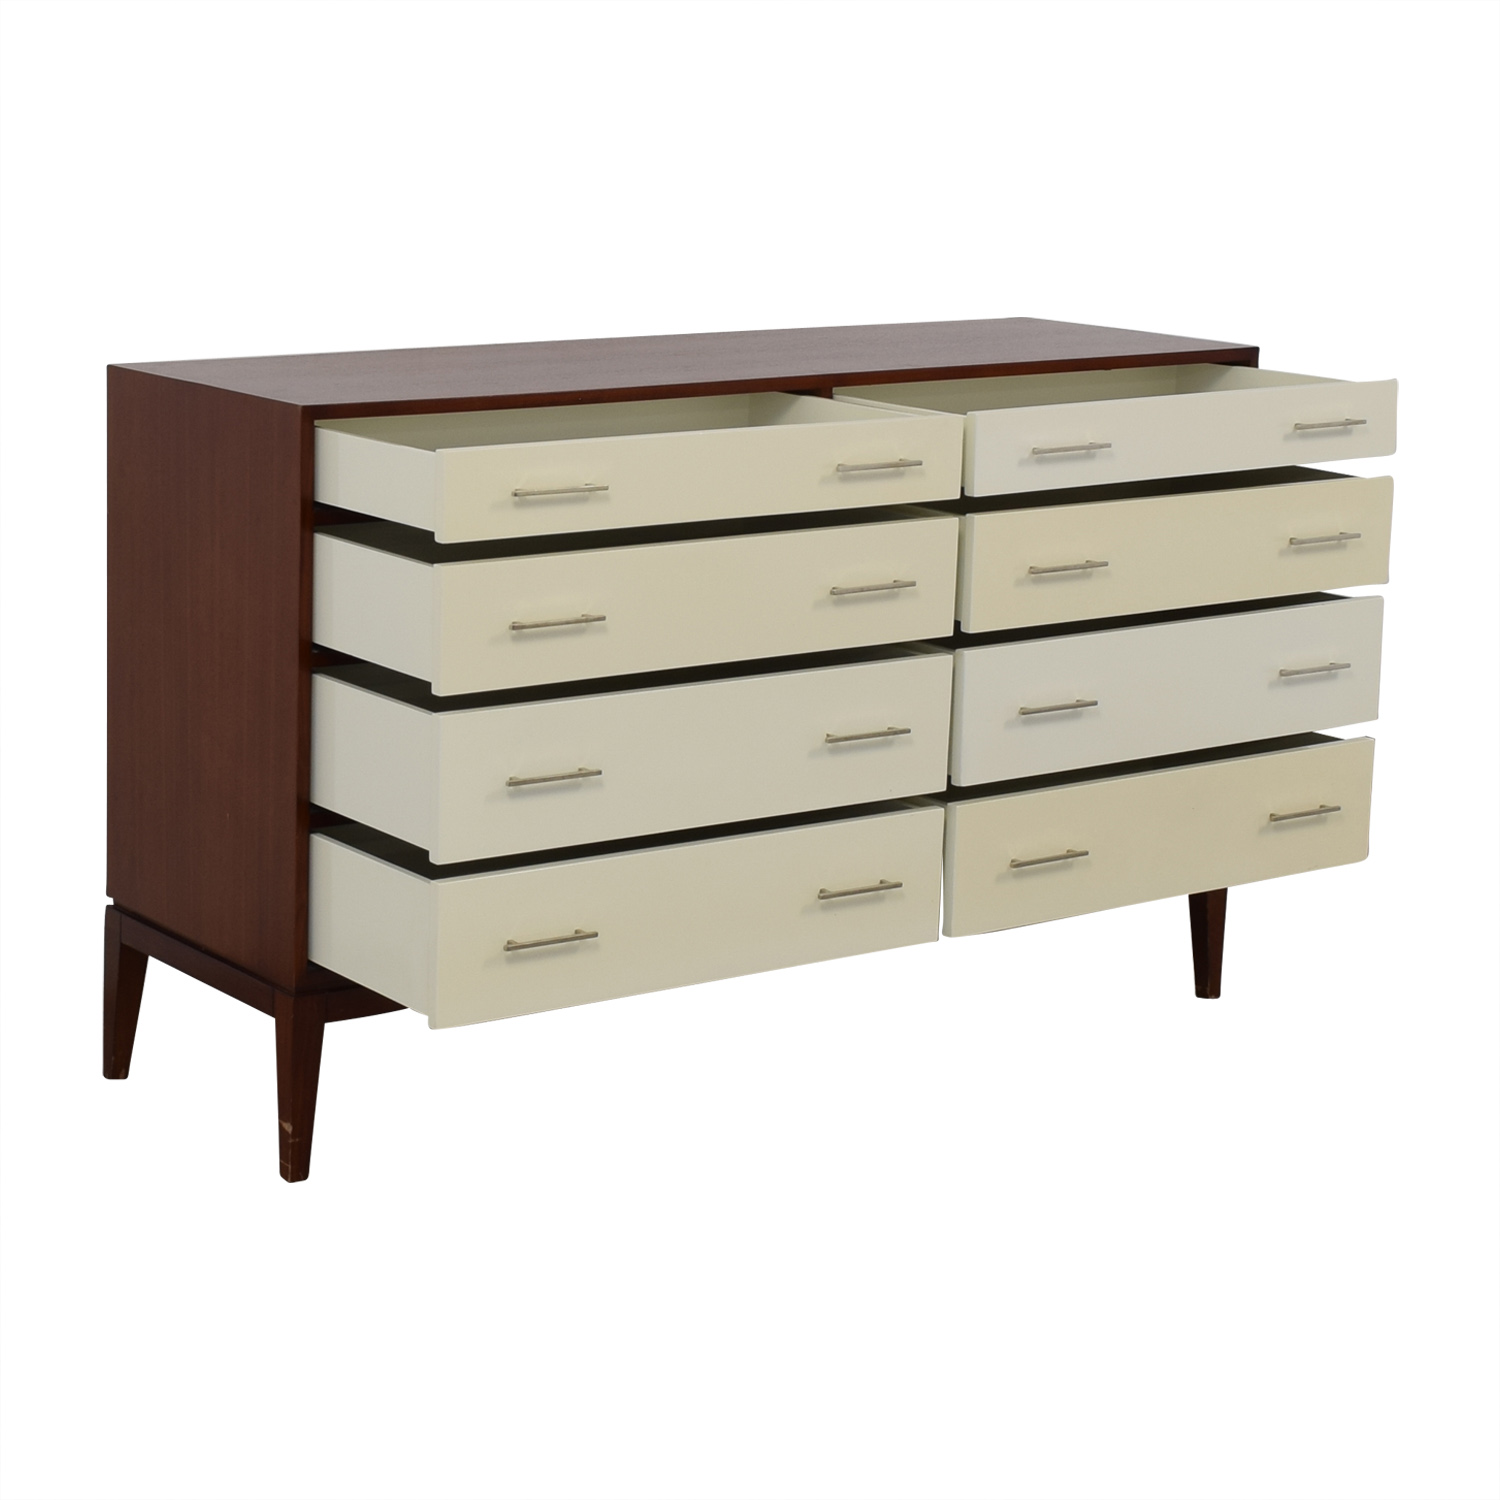 Mitchell Gold + Bob Williams Mitchell Gold + Bob Williams 8 Drawer Dresser coupon